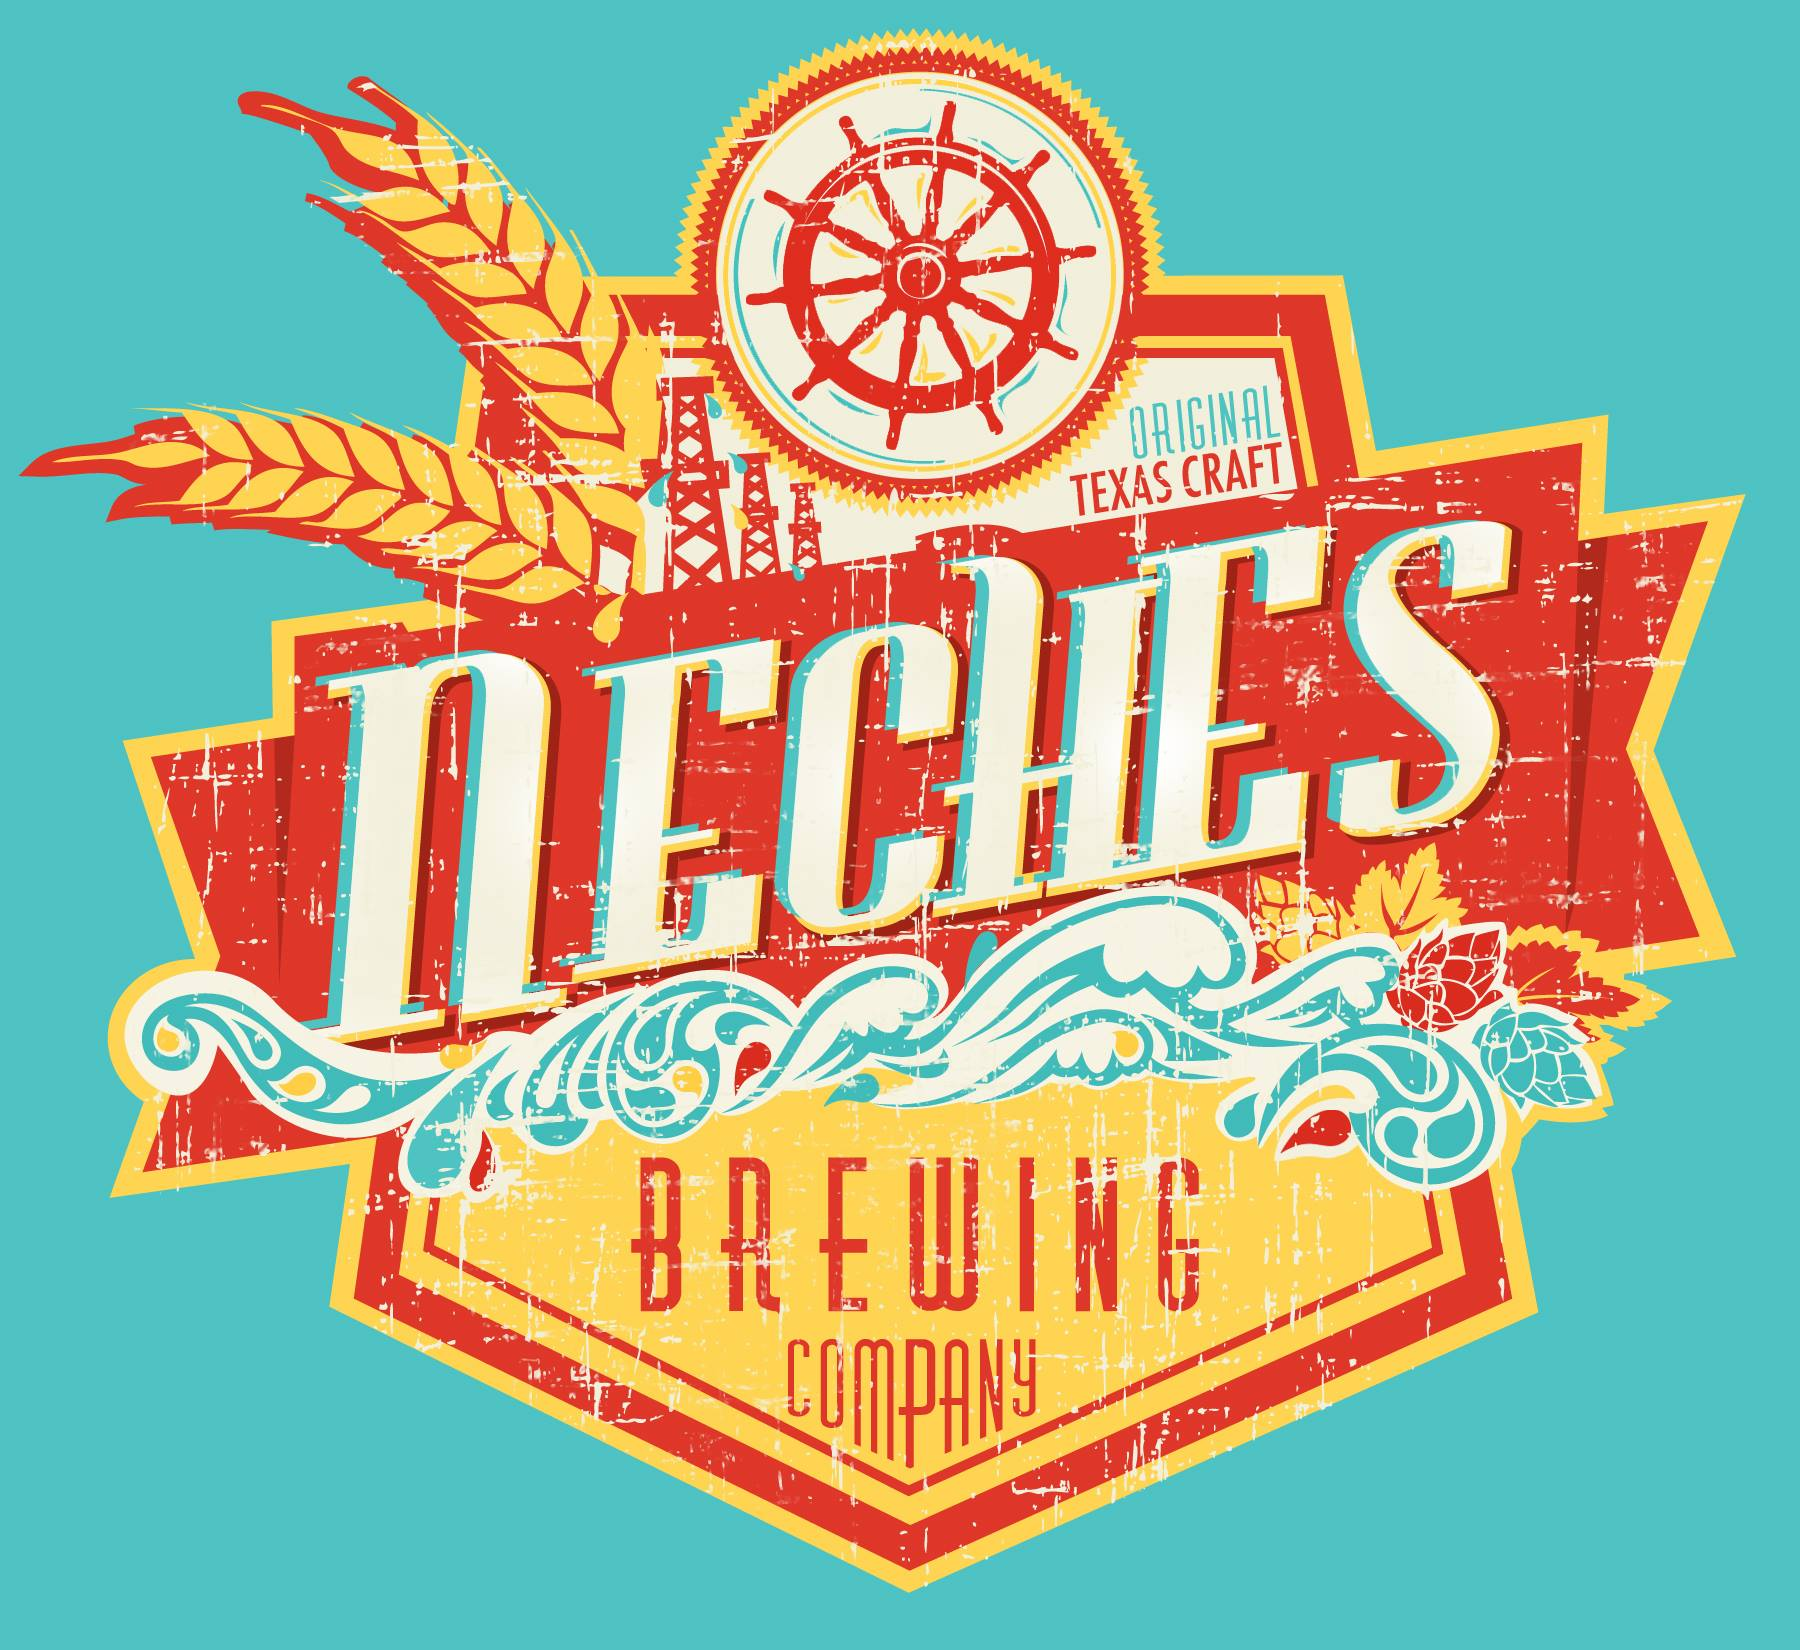 neches-brewing-company